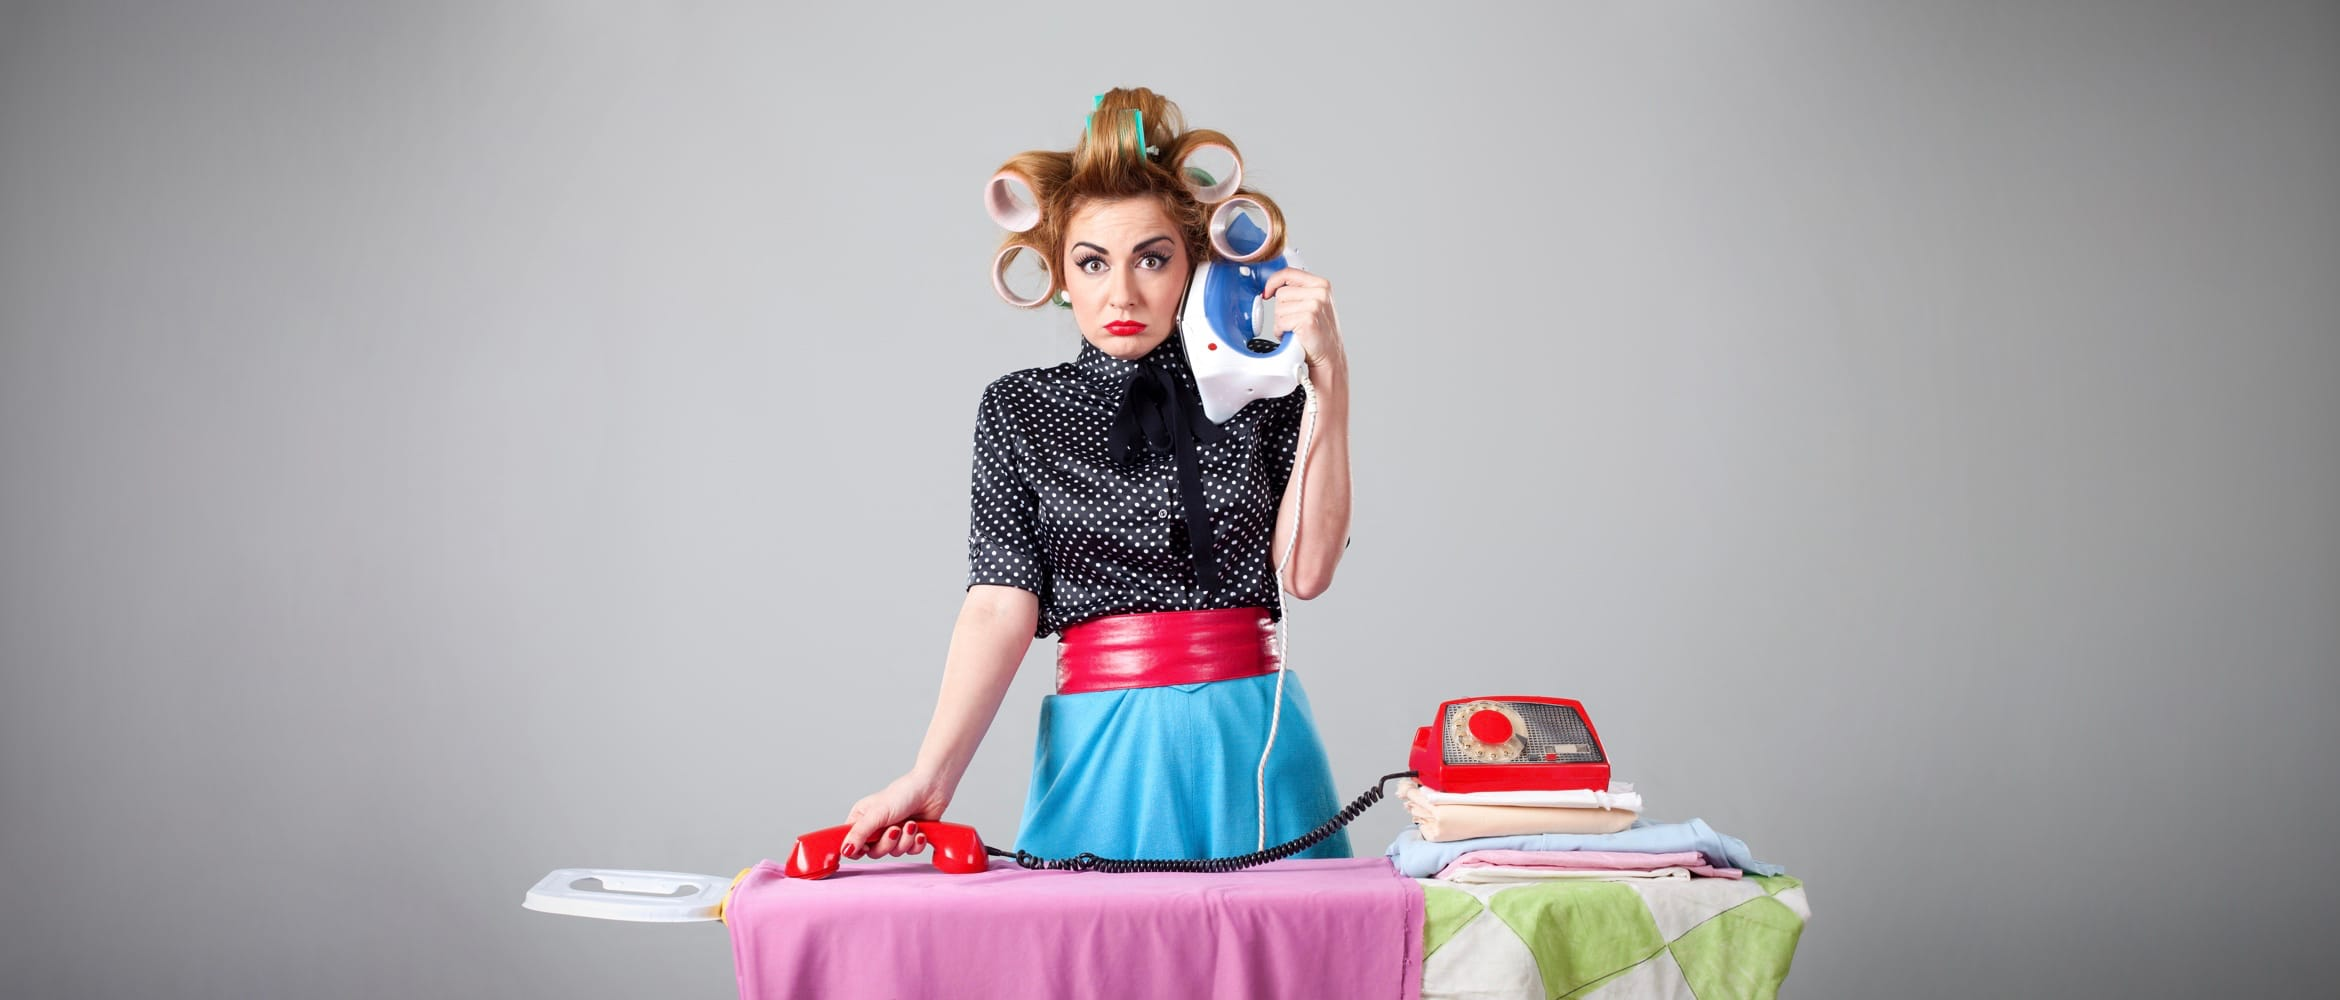 Multitasking woman puts an iron to her ear and irons a shirt with a phone to illustrate being overwhelmed